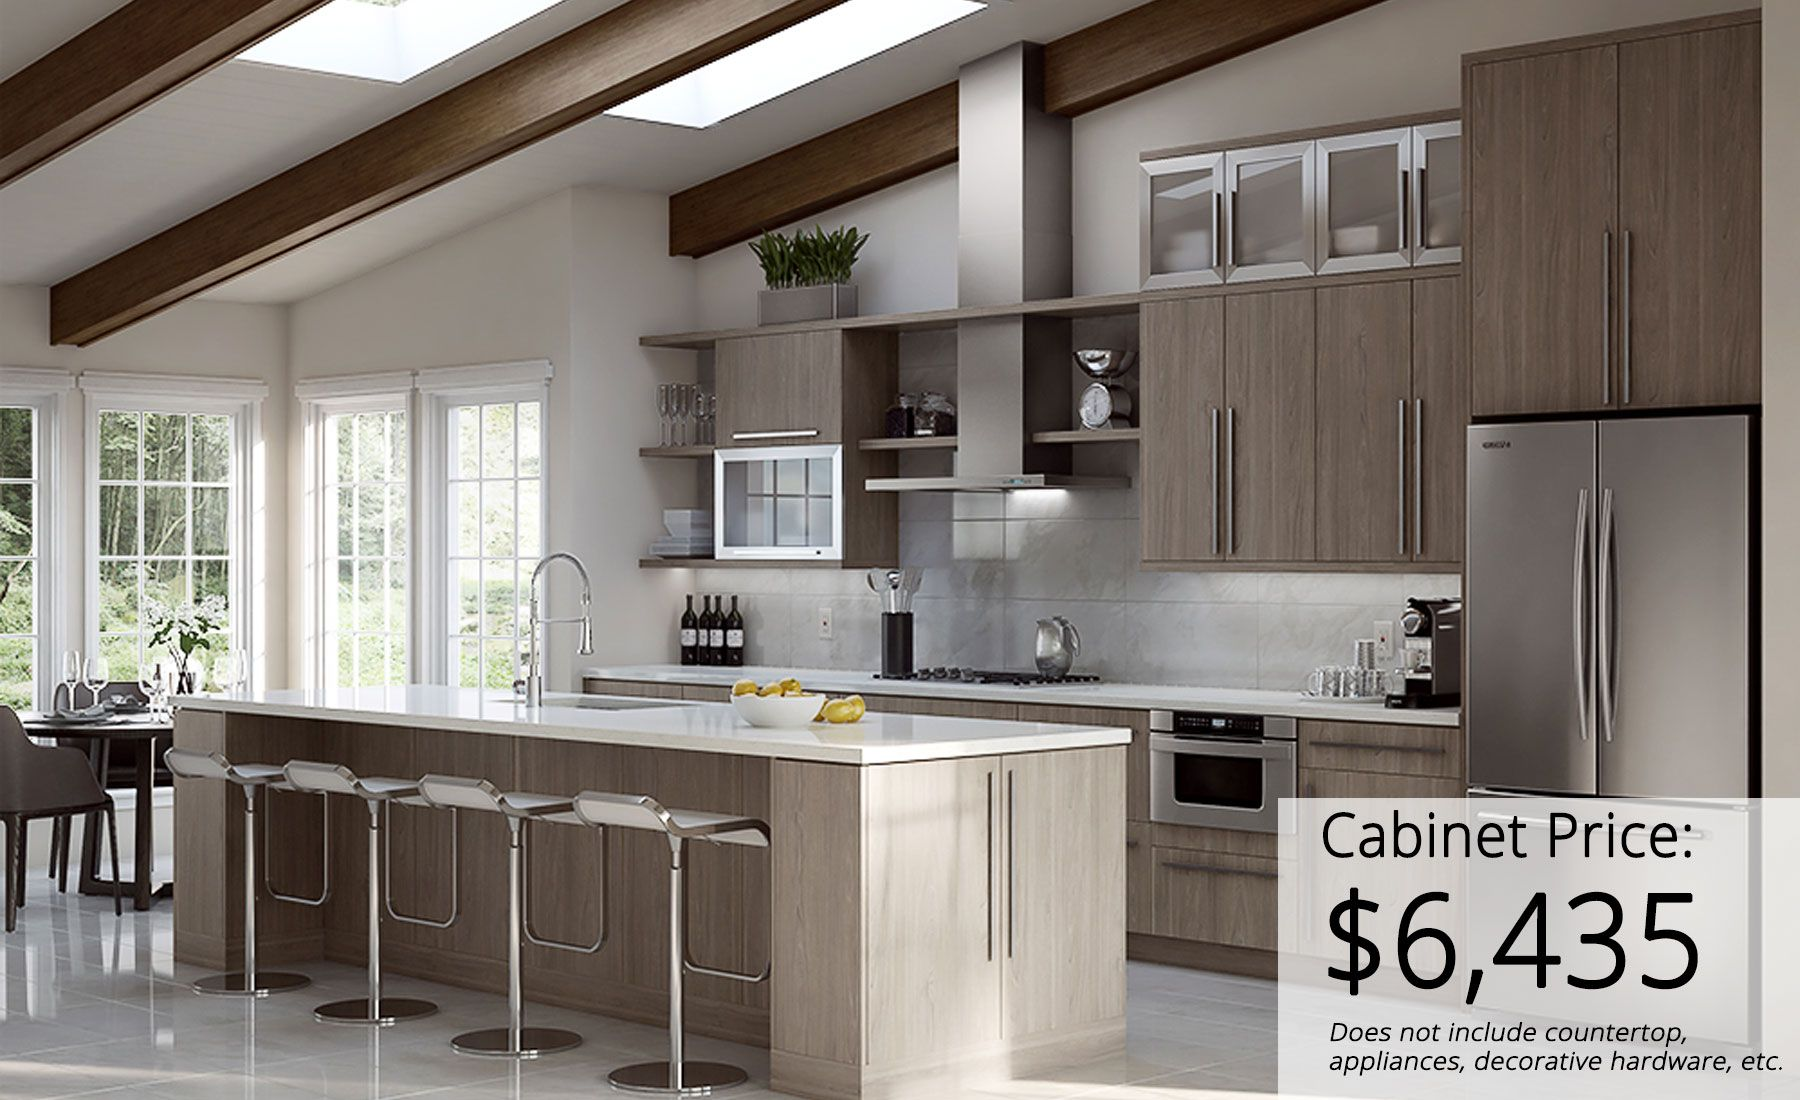 Hampton Bay Designer Series Designer Kitchen Cabinets Available At Home Depot Driftwood Kitchen Kitchen Cabinets Home Depot Kitchen Design